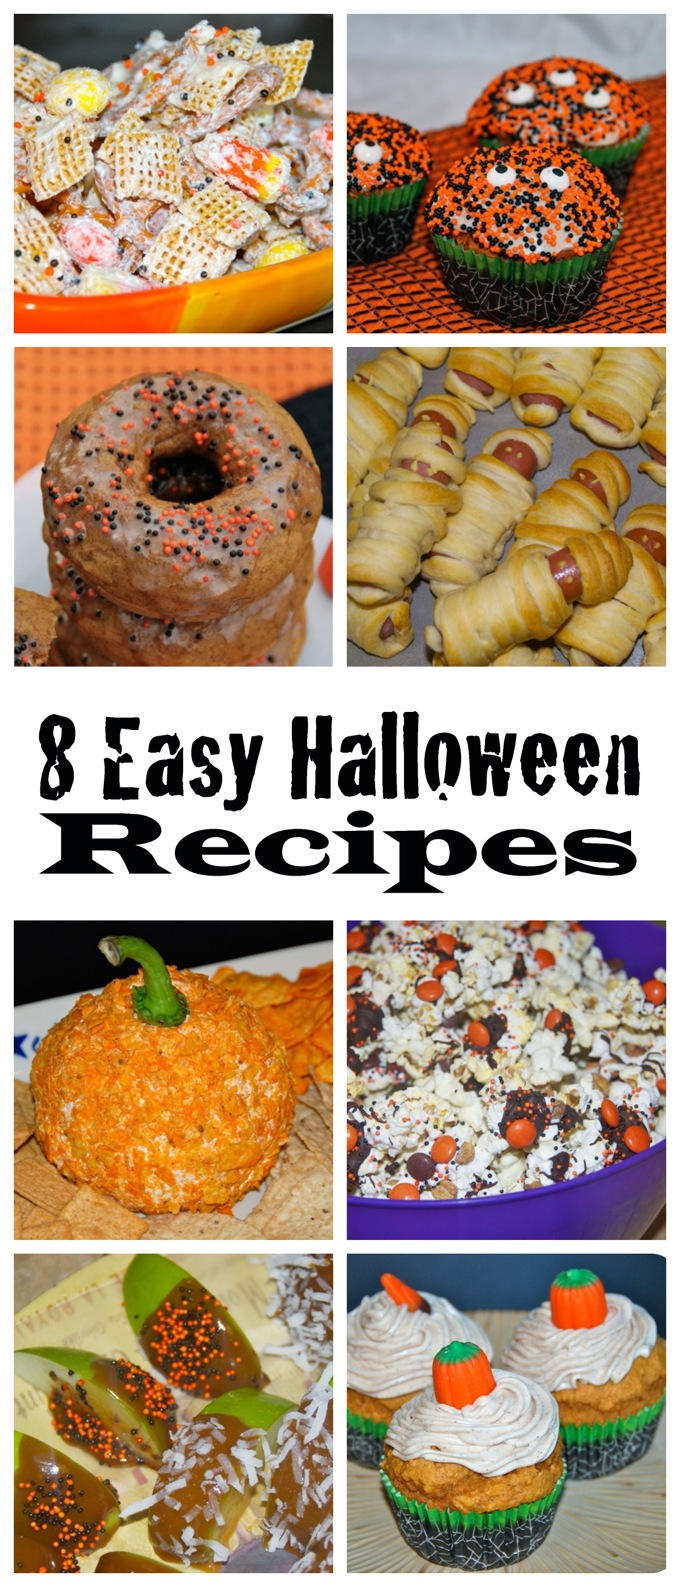 8 Easy Halloween Recipes // www.jessfuel.com